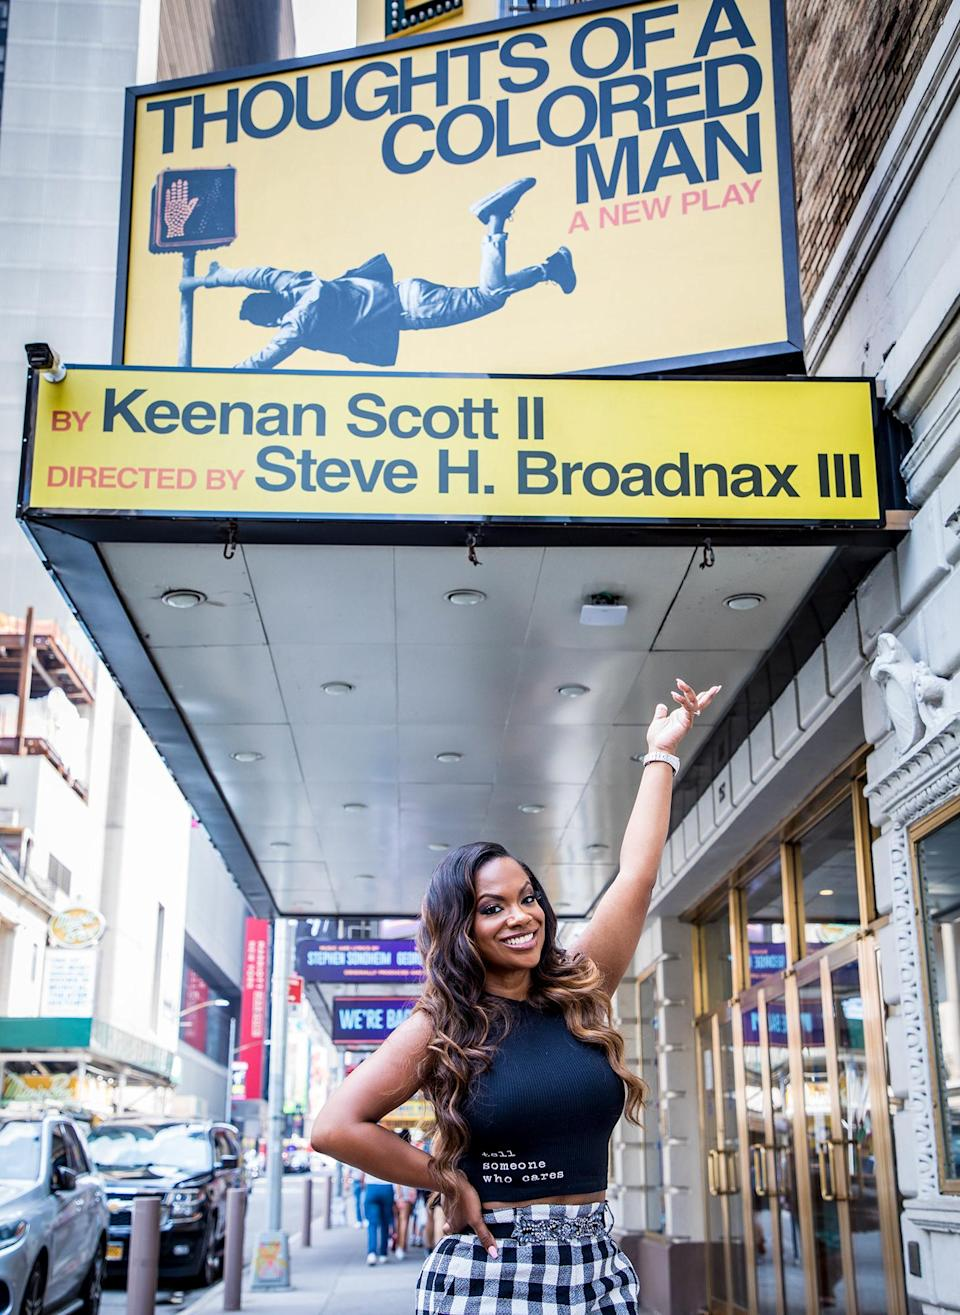 <p>Kandi Burruss celebrates on Aug. 30 after joining the producing team of Broadway's <em>Thoughts of a Colored Man</em> in N.Y.C.</p>